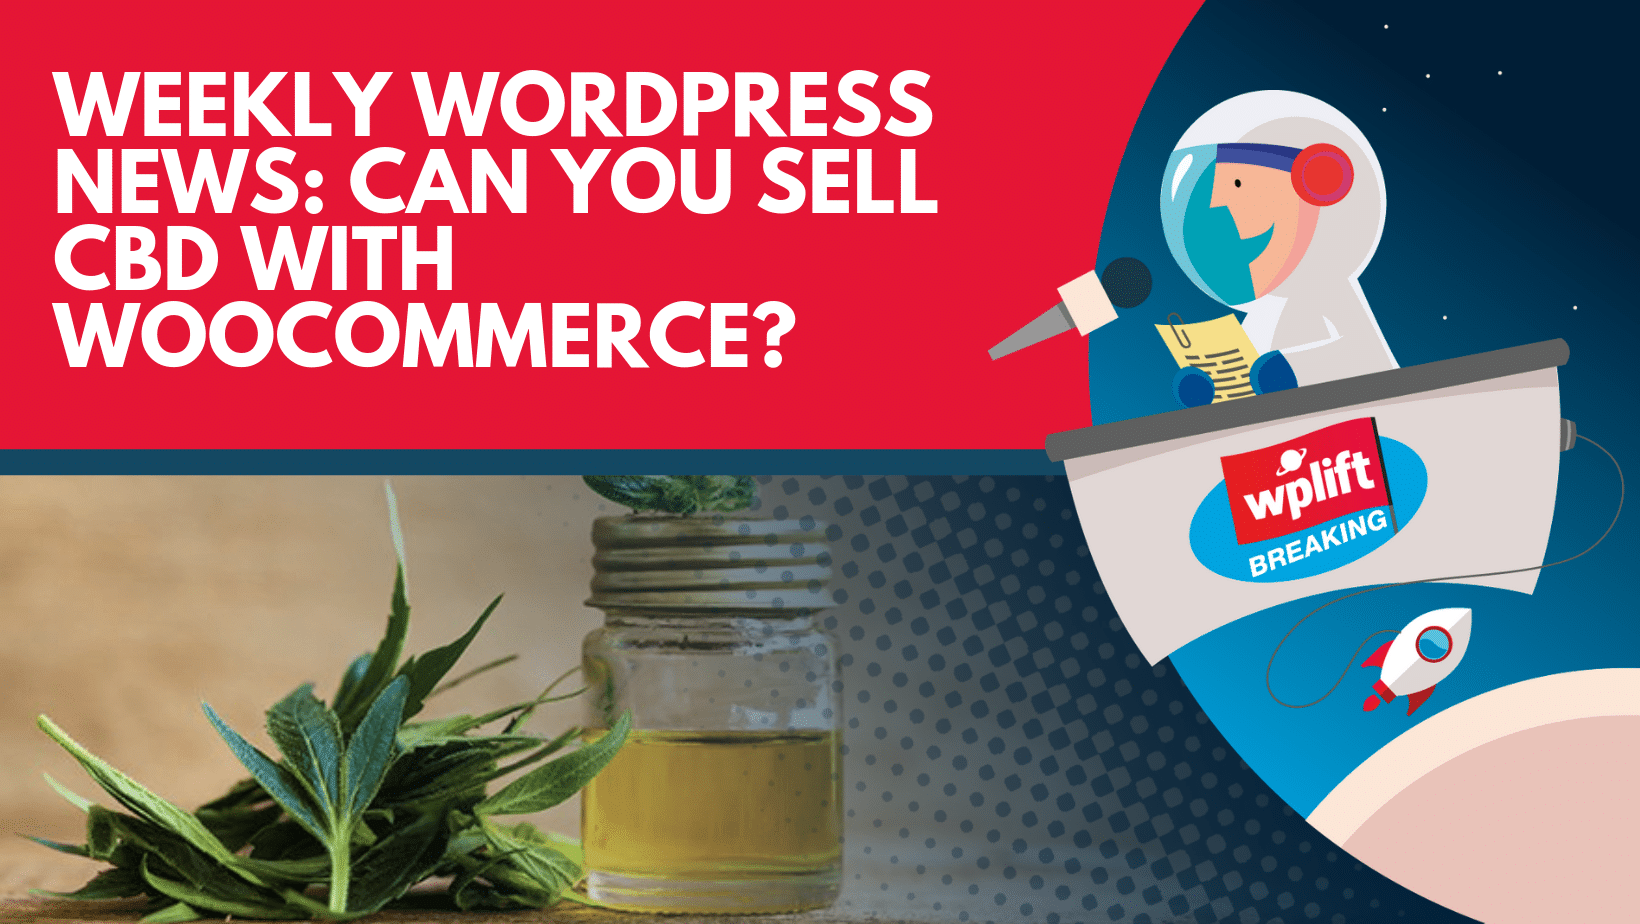 Can You Sell CBD With WooCommerce?